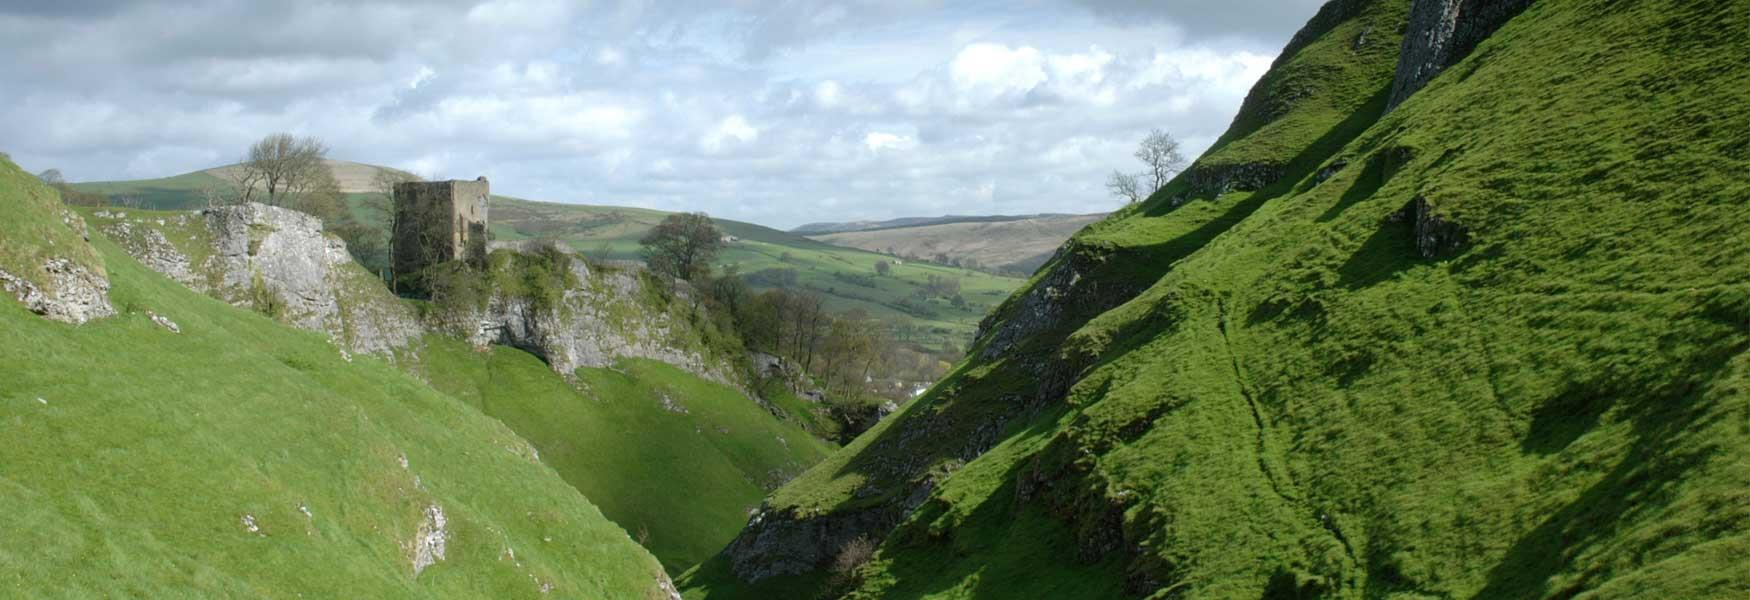 Cavedale